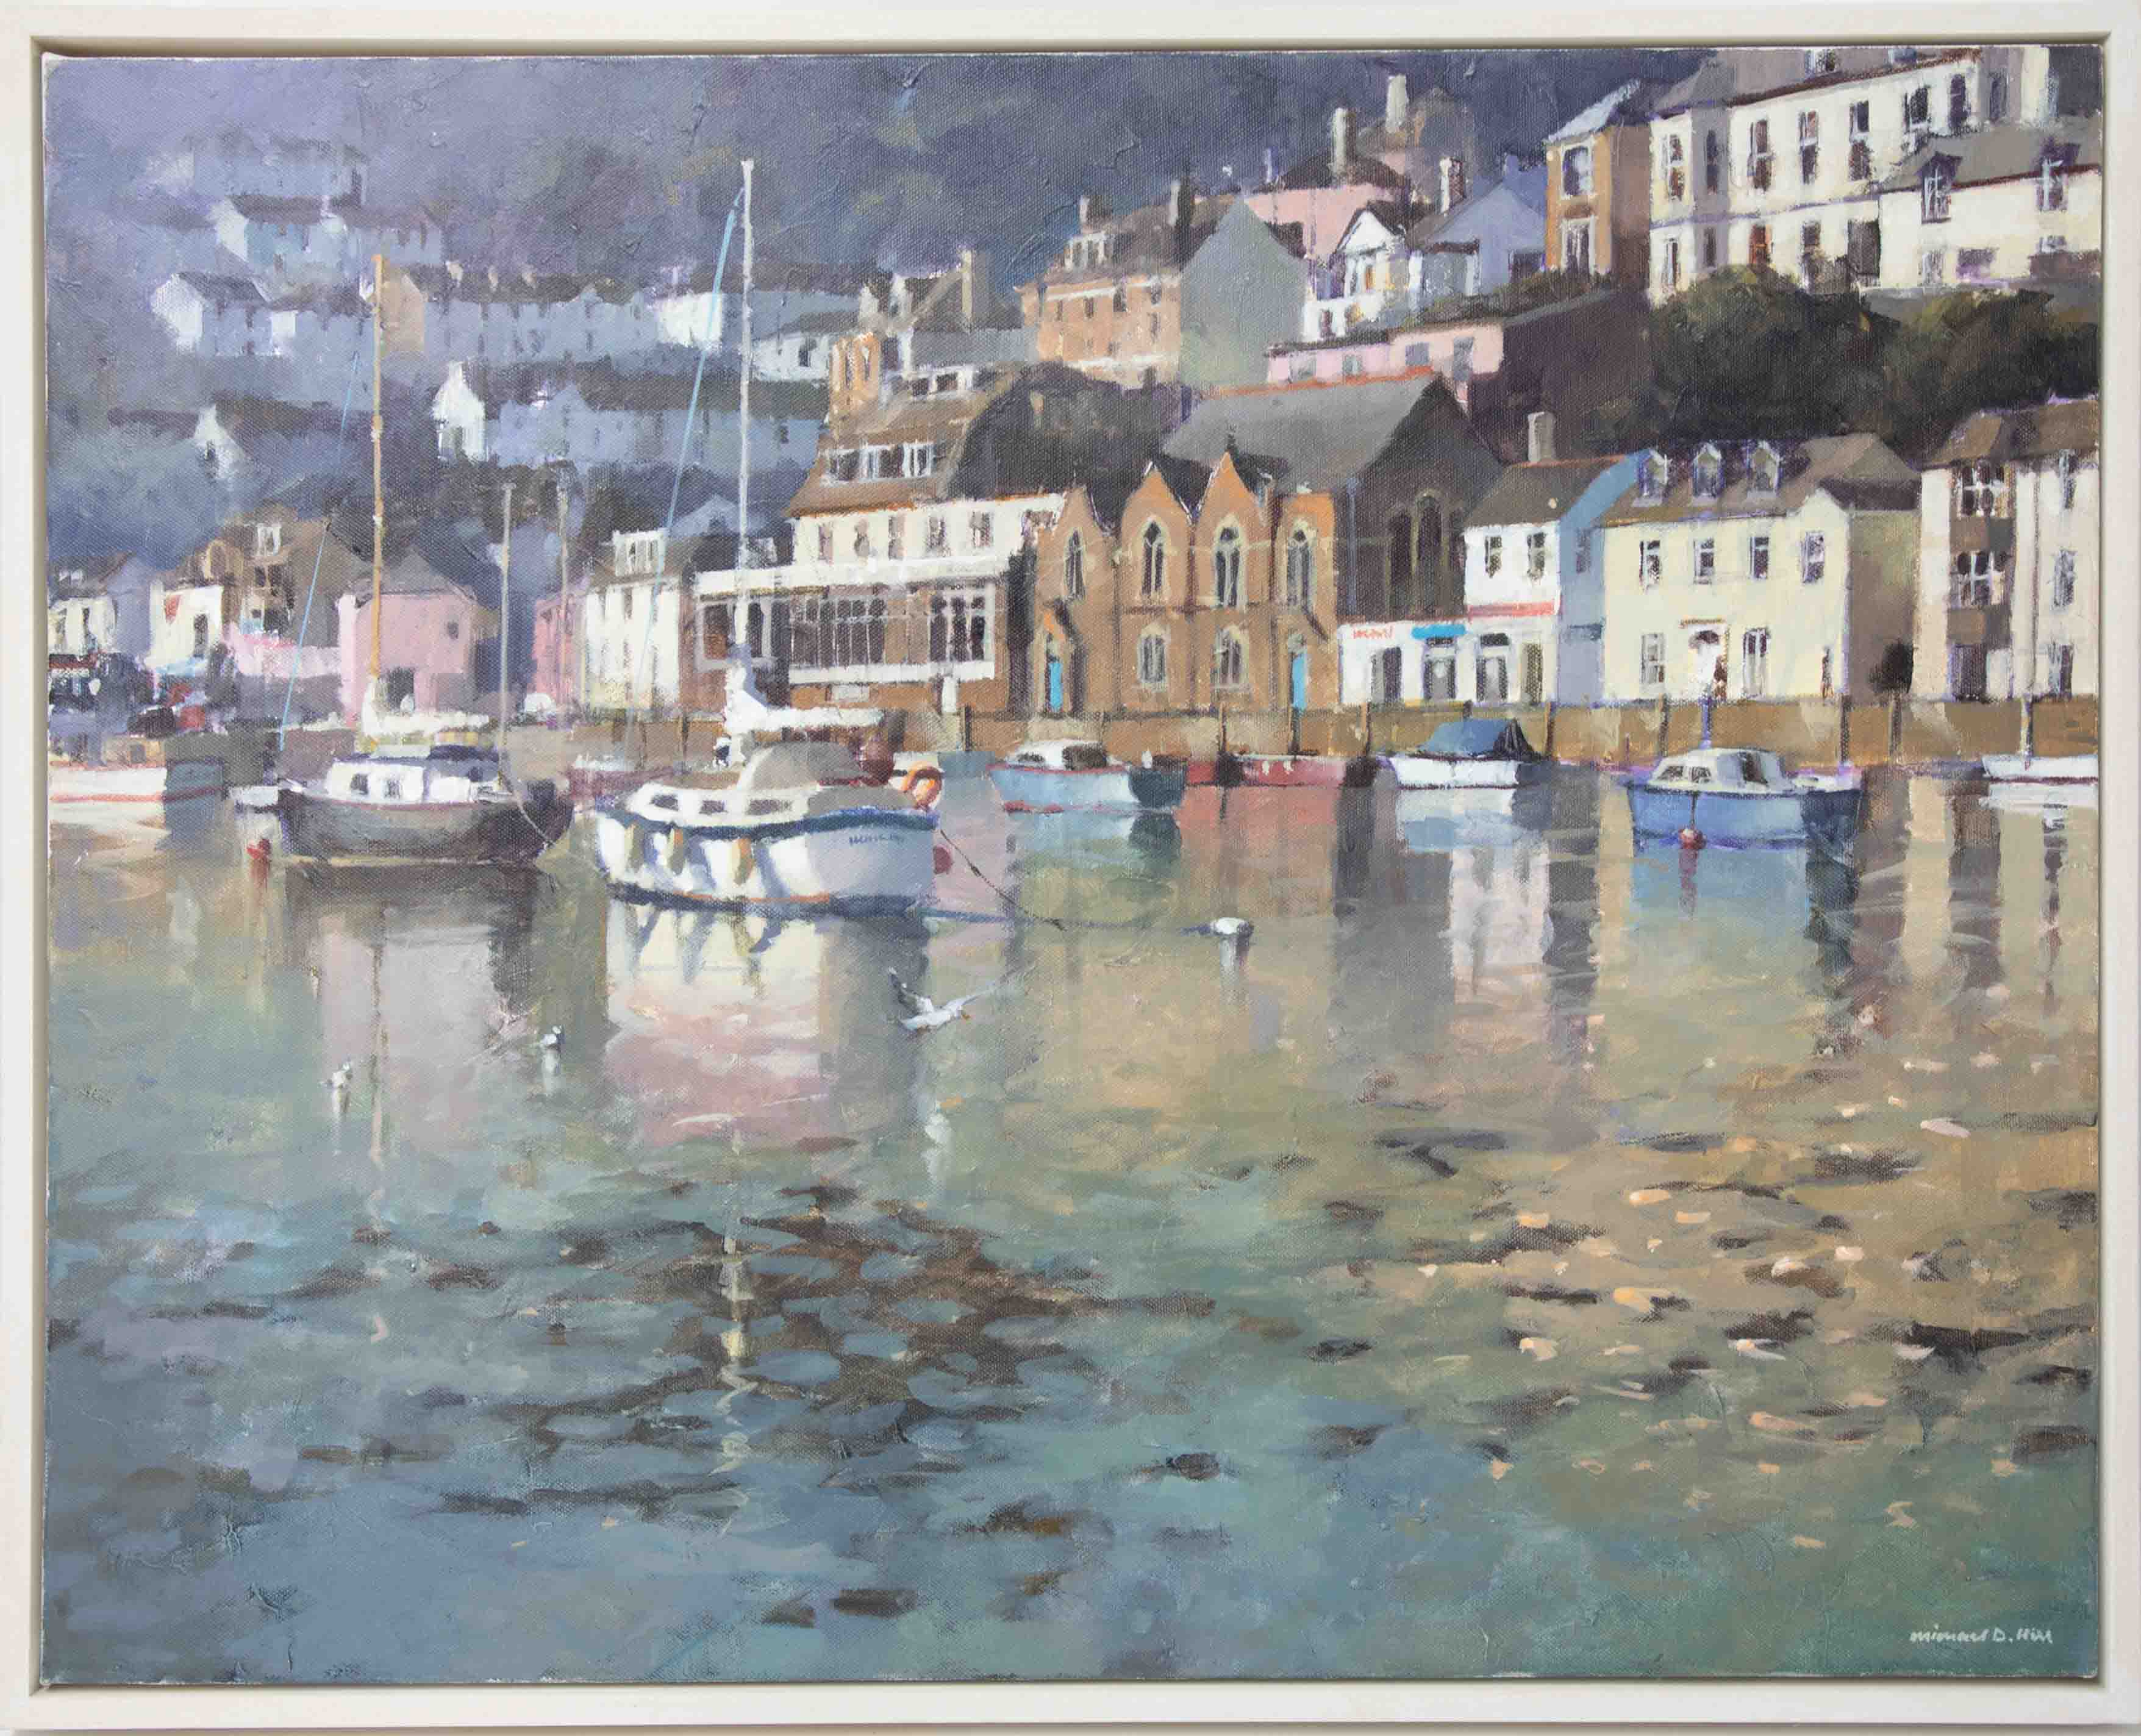 Michael D Hill, 'Harbour, West Looe' signed oil on canvas, 61cm x 76cm, framed. Michael Hill (born